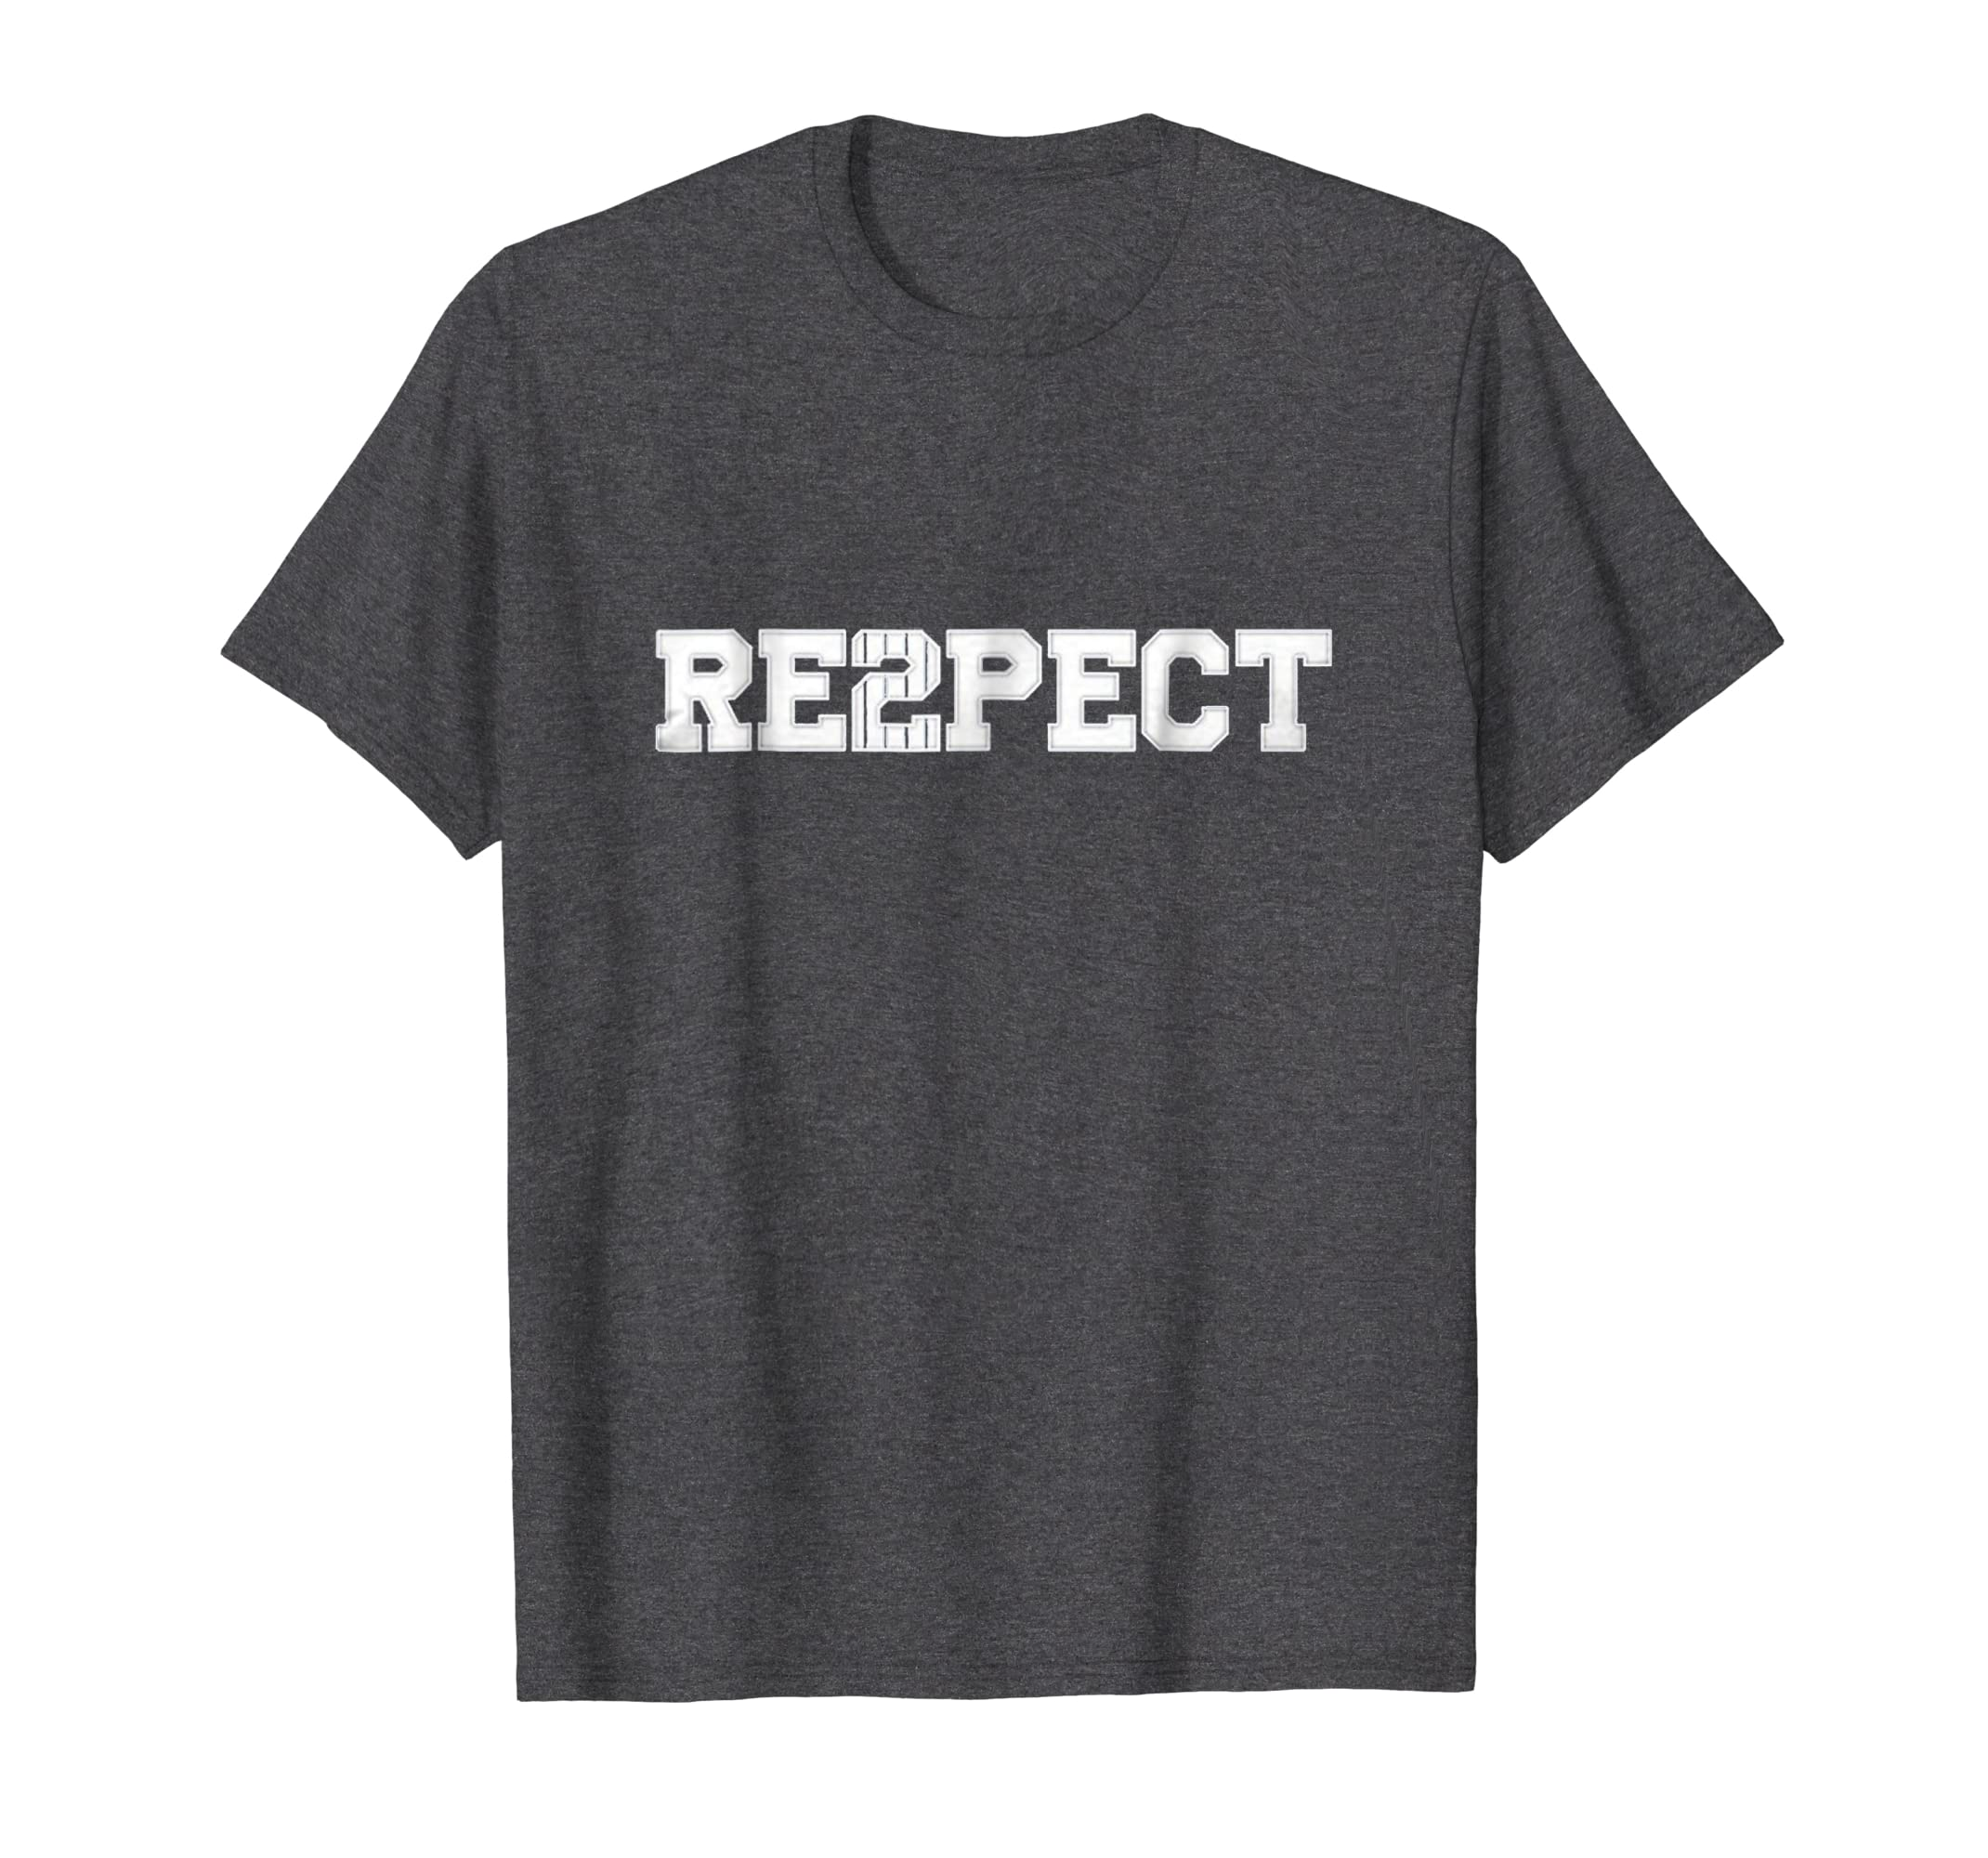 bbb7714ef020 Amazon.com  Re2pect T-Shirt Respect Derek Tee Shirt  Clothing